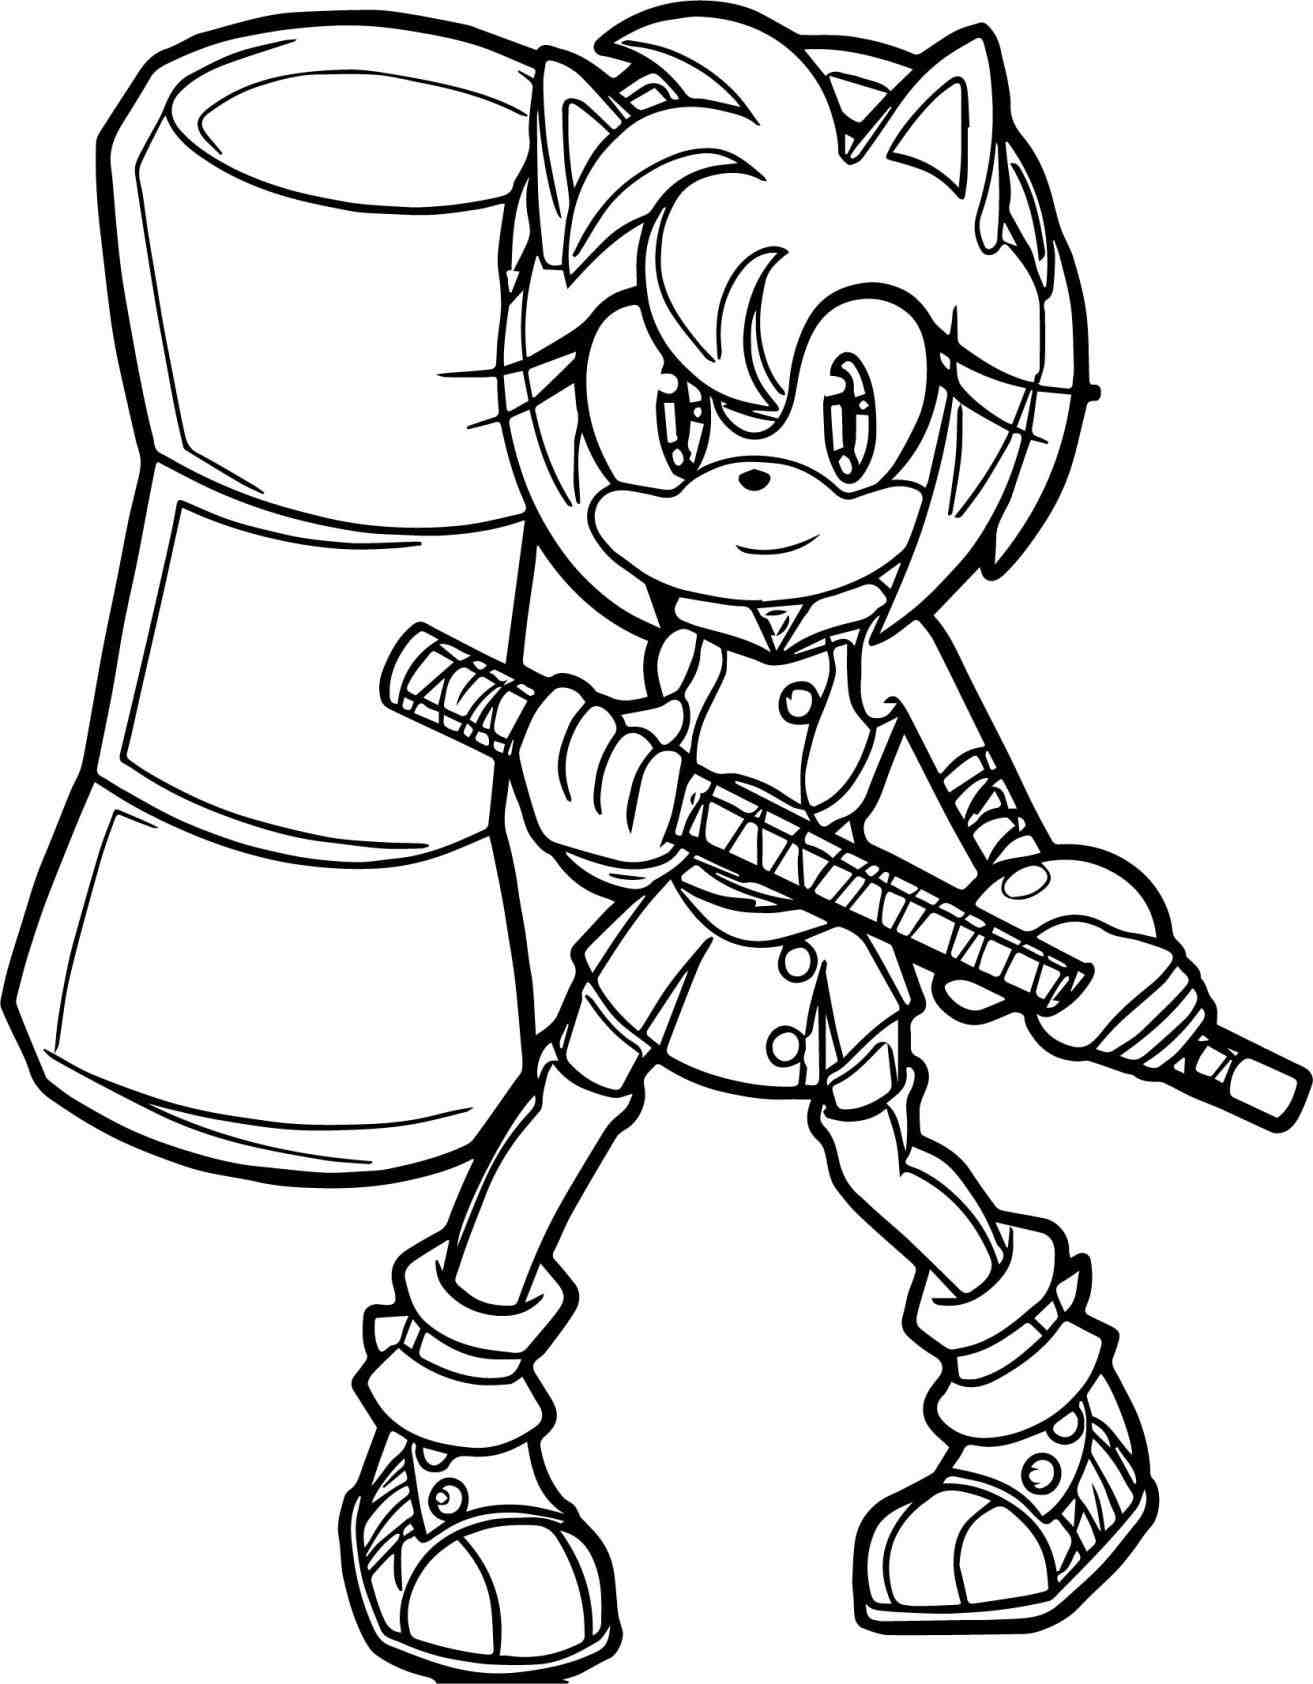 Amy Sonic Coloring Pages at GetDrawings | Free download